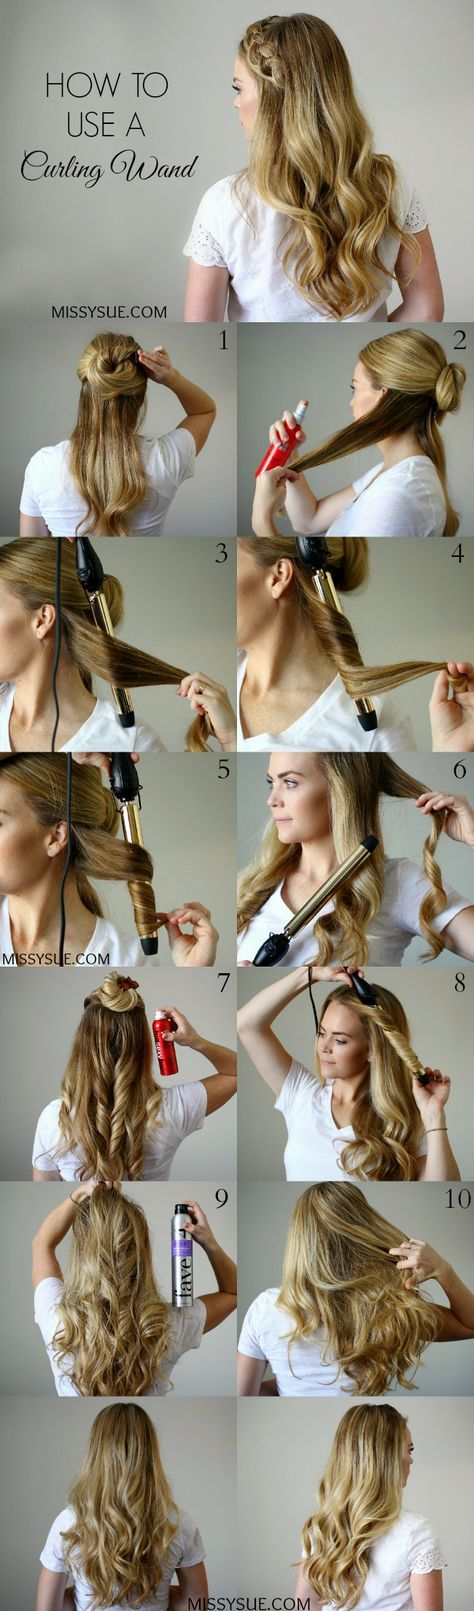 how-to-use-a-curling-wand-tutorial